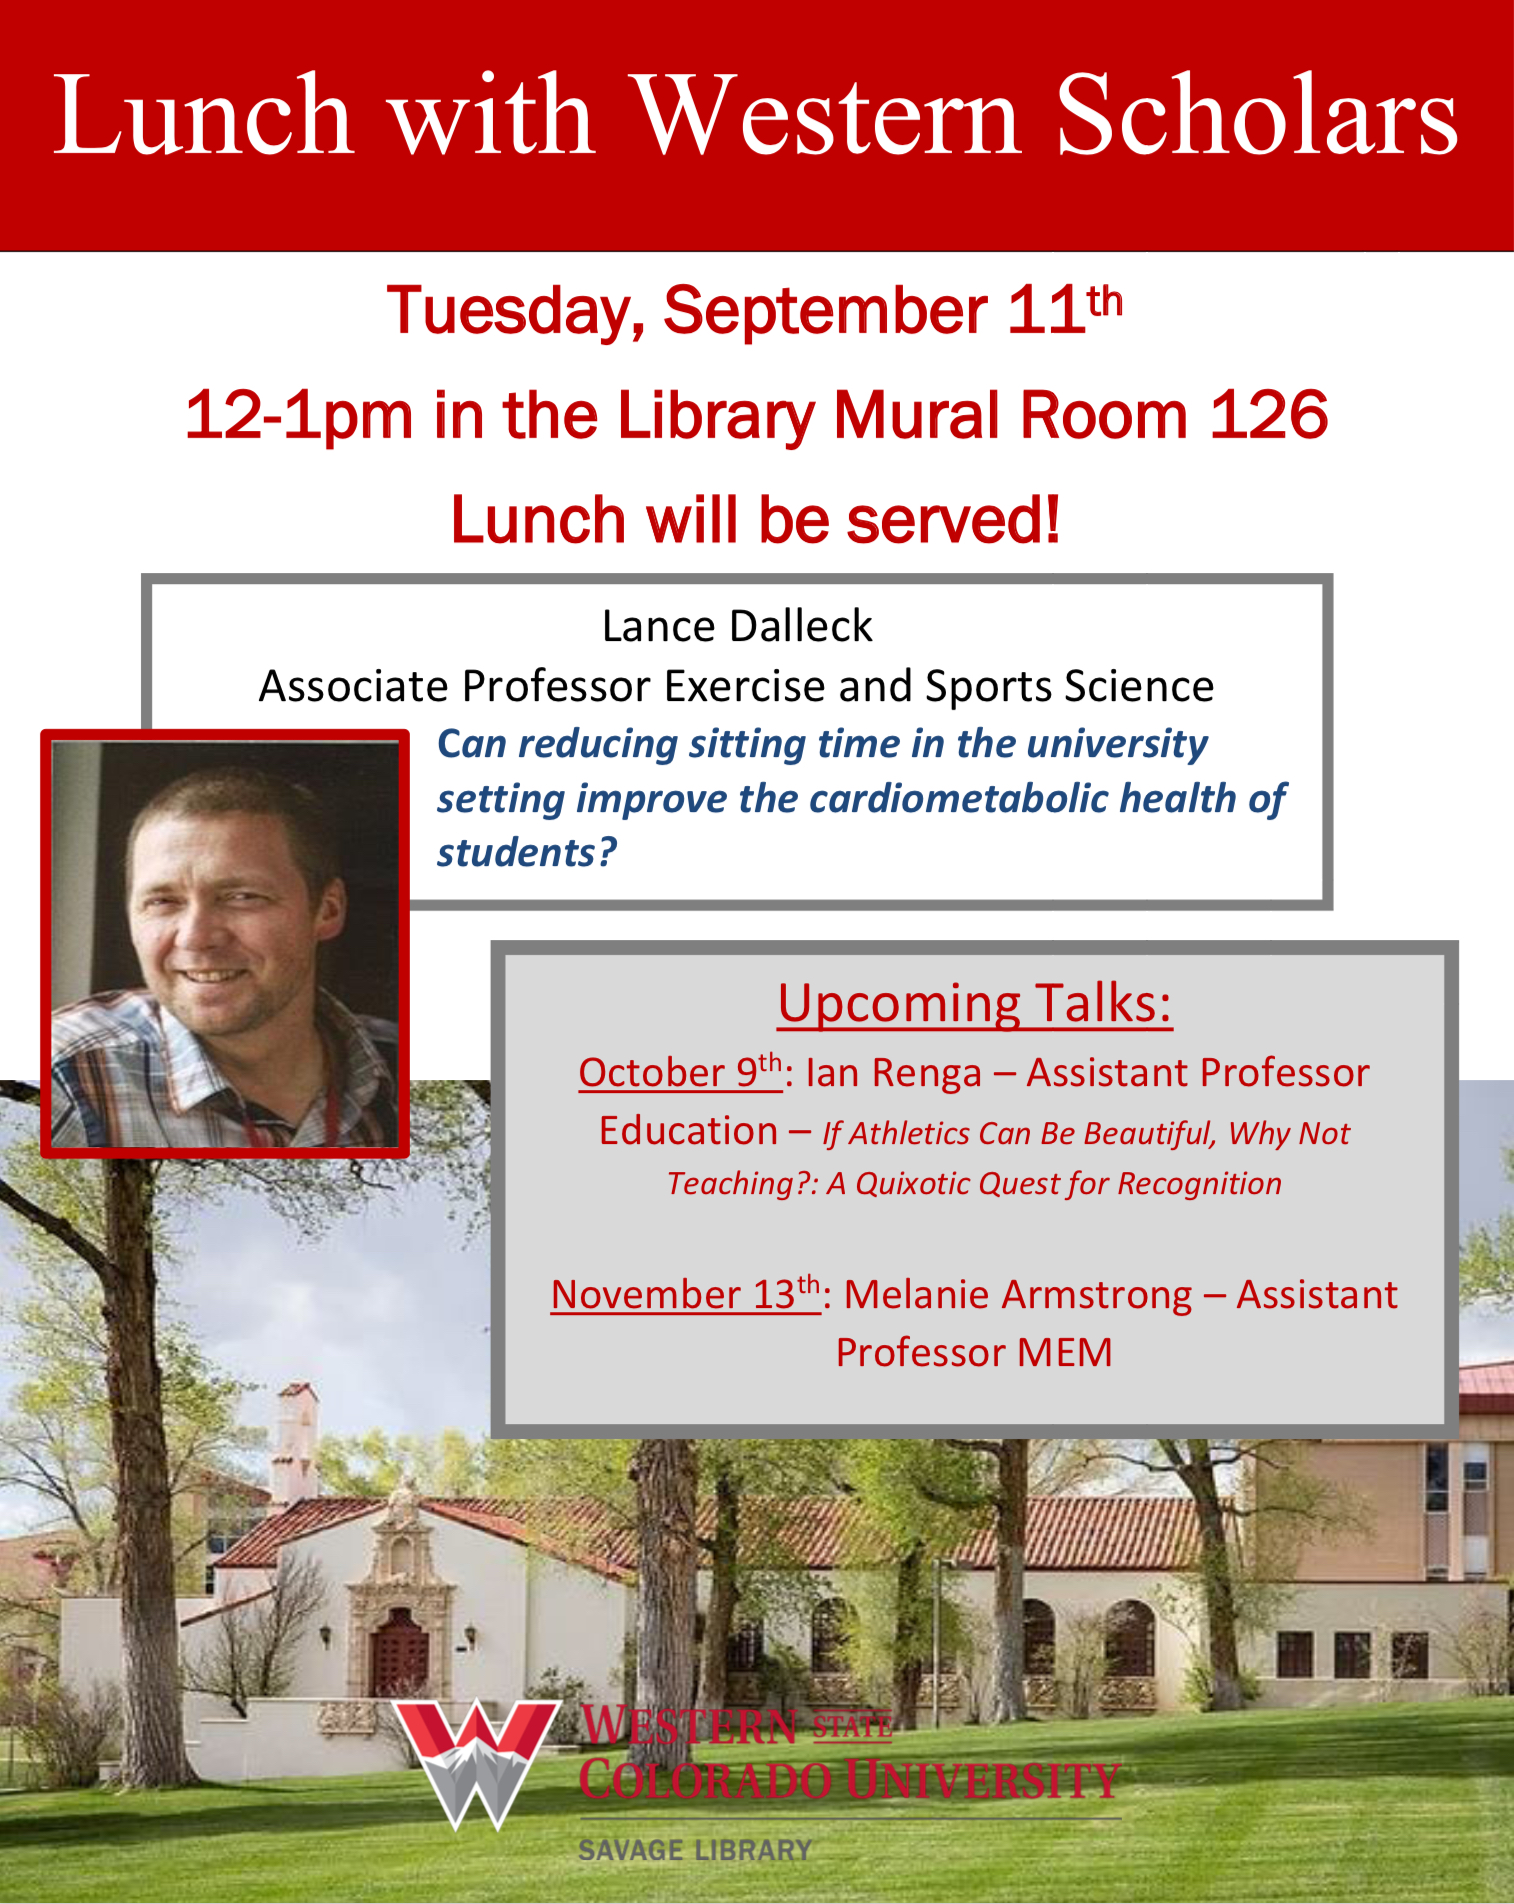 Lunch with Western Scholars: Lance Dalleck